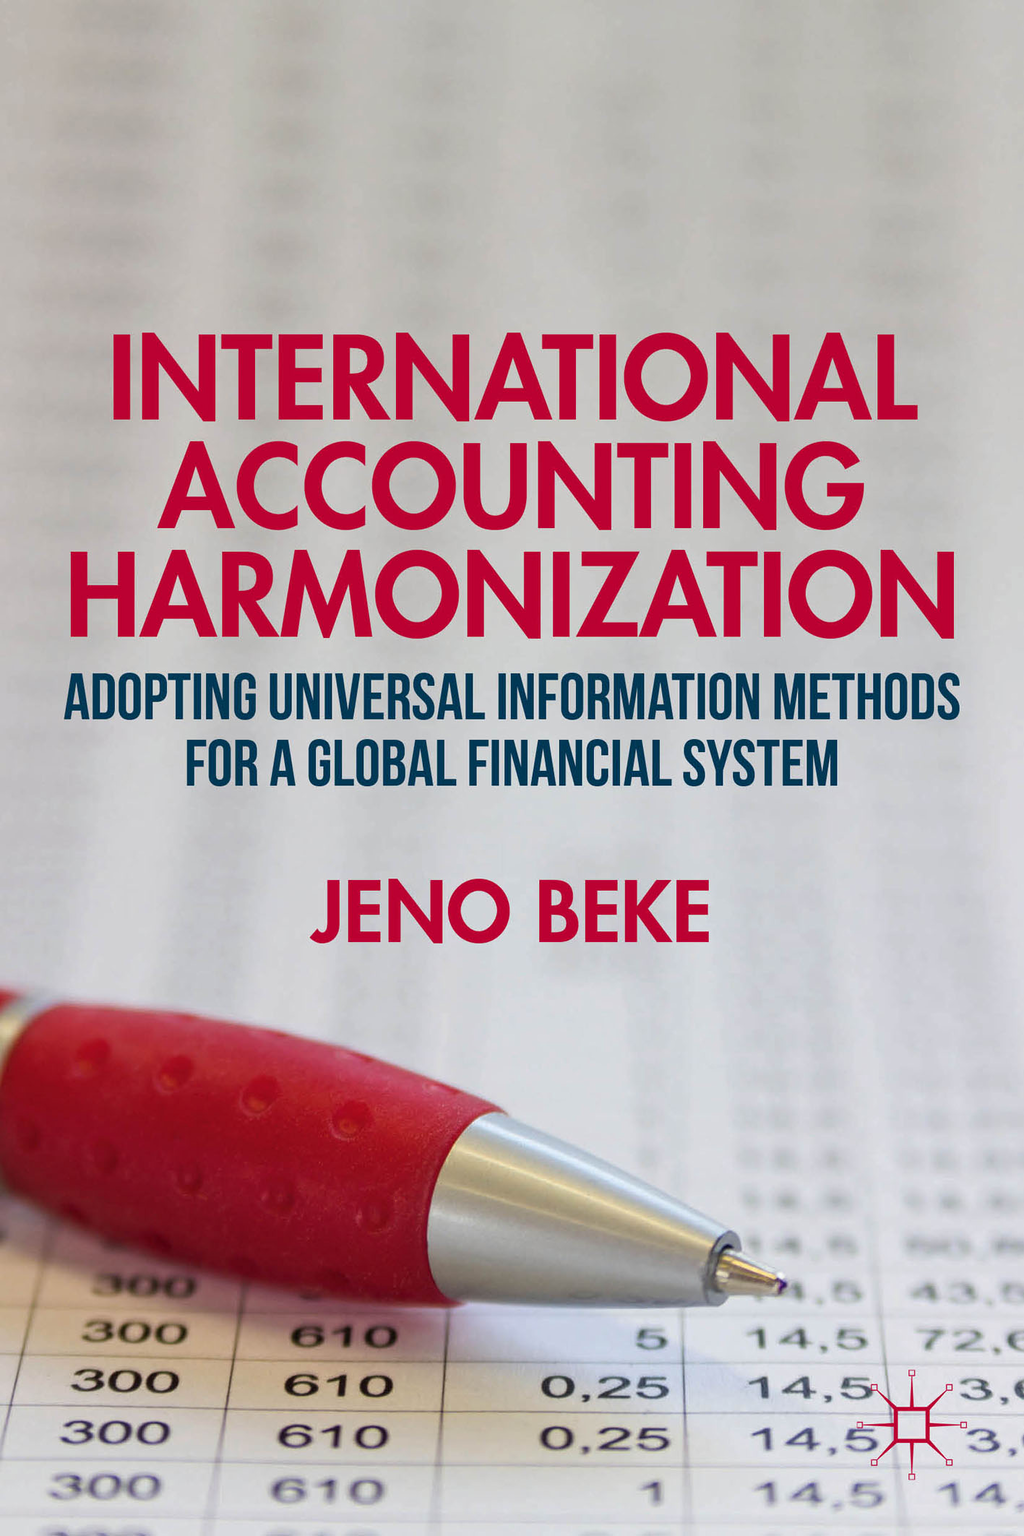 International Accounting Harmonization Adopting Universal Information Methods for a Global Financial System